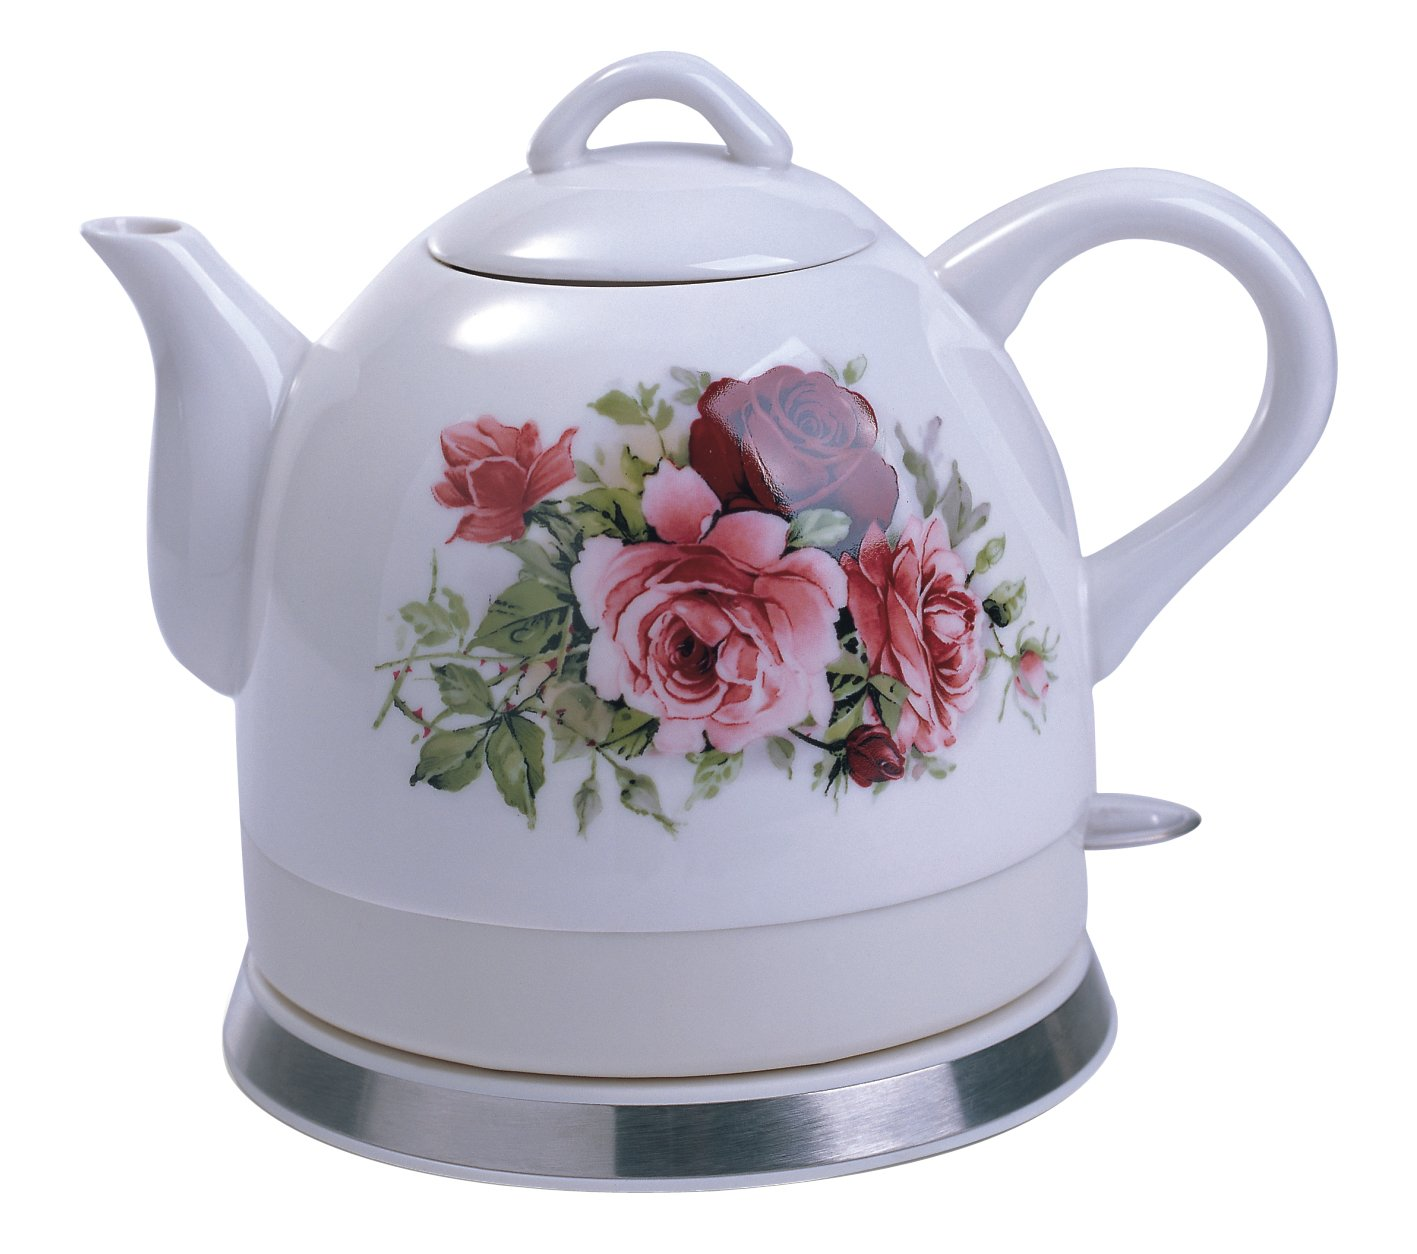 FixtureDisplays Ceramic Electric Kettle with Rose Flower Pattern 12026-FBA Fulfilment By Amazon